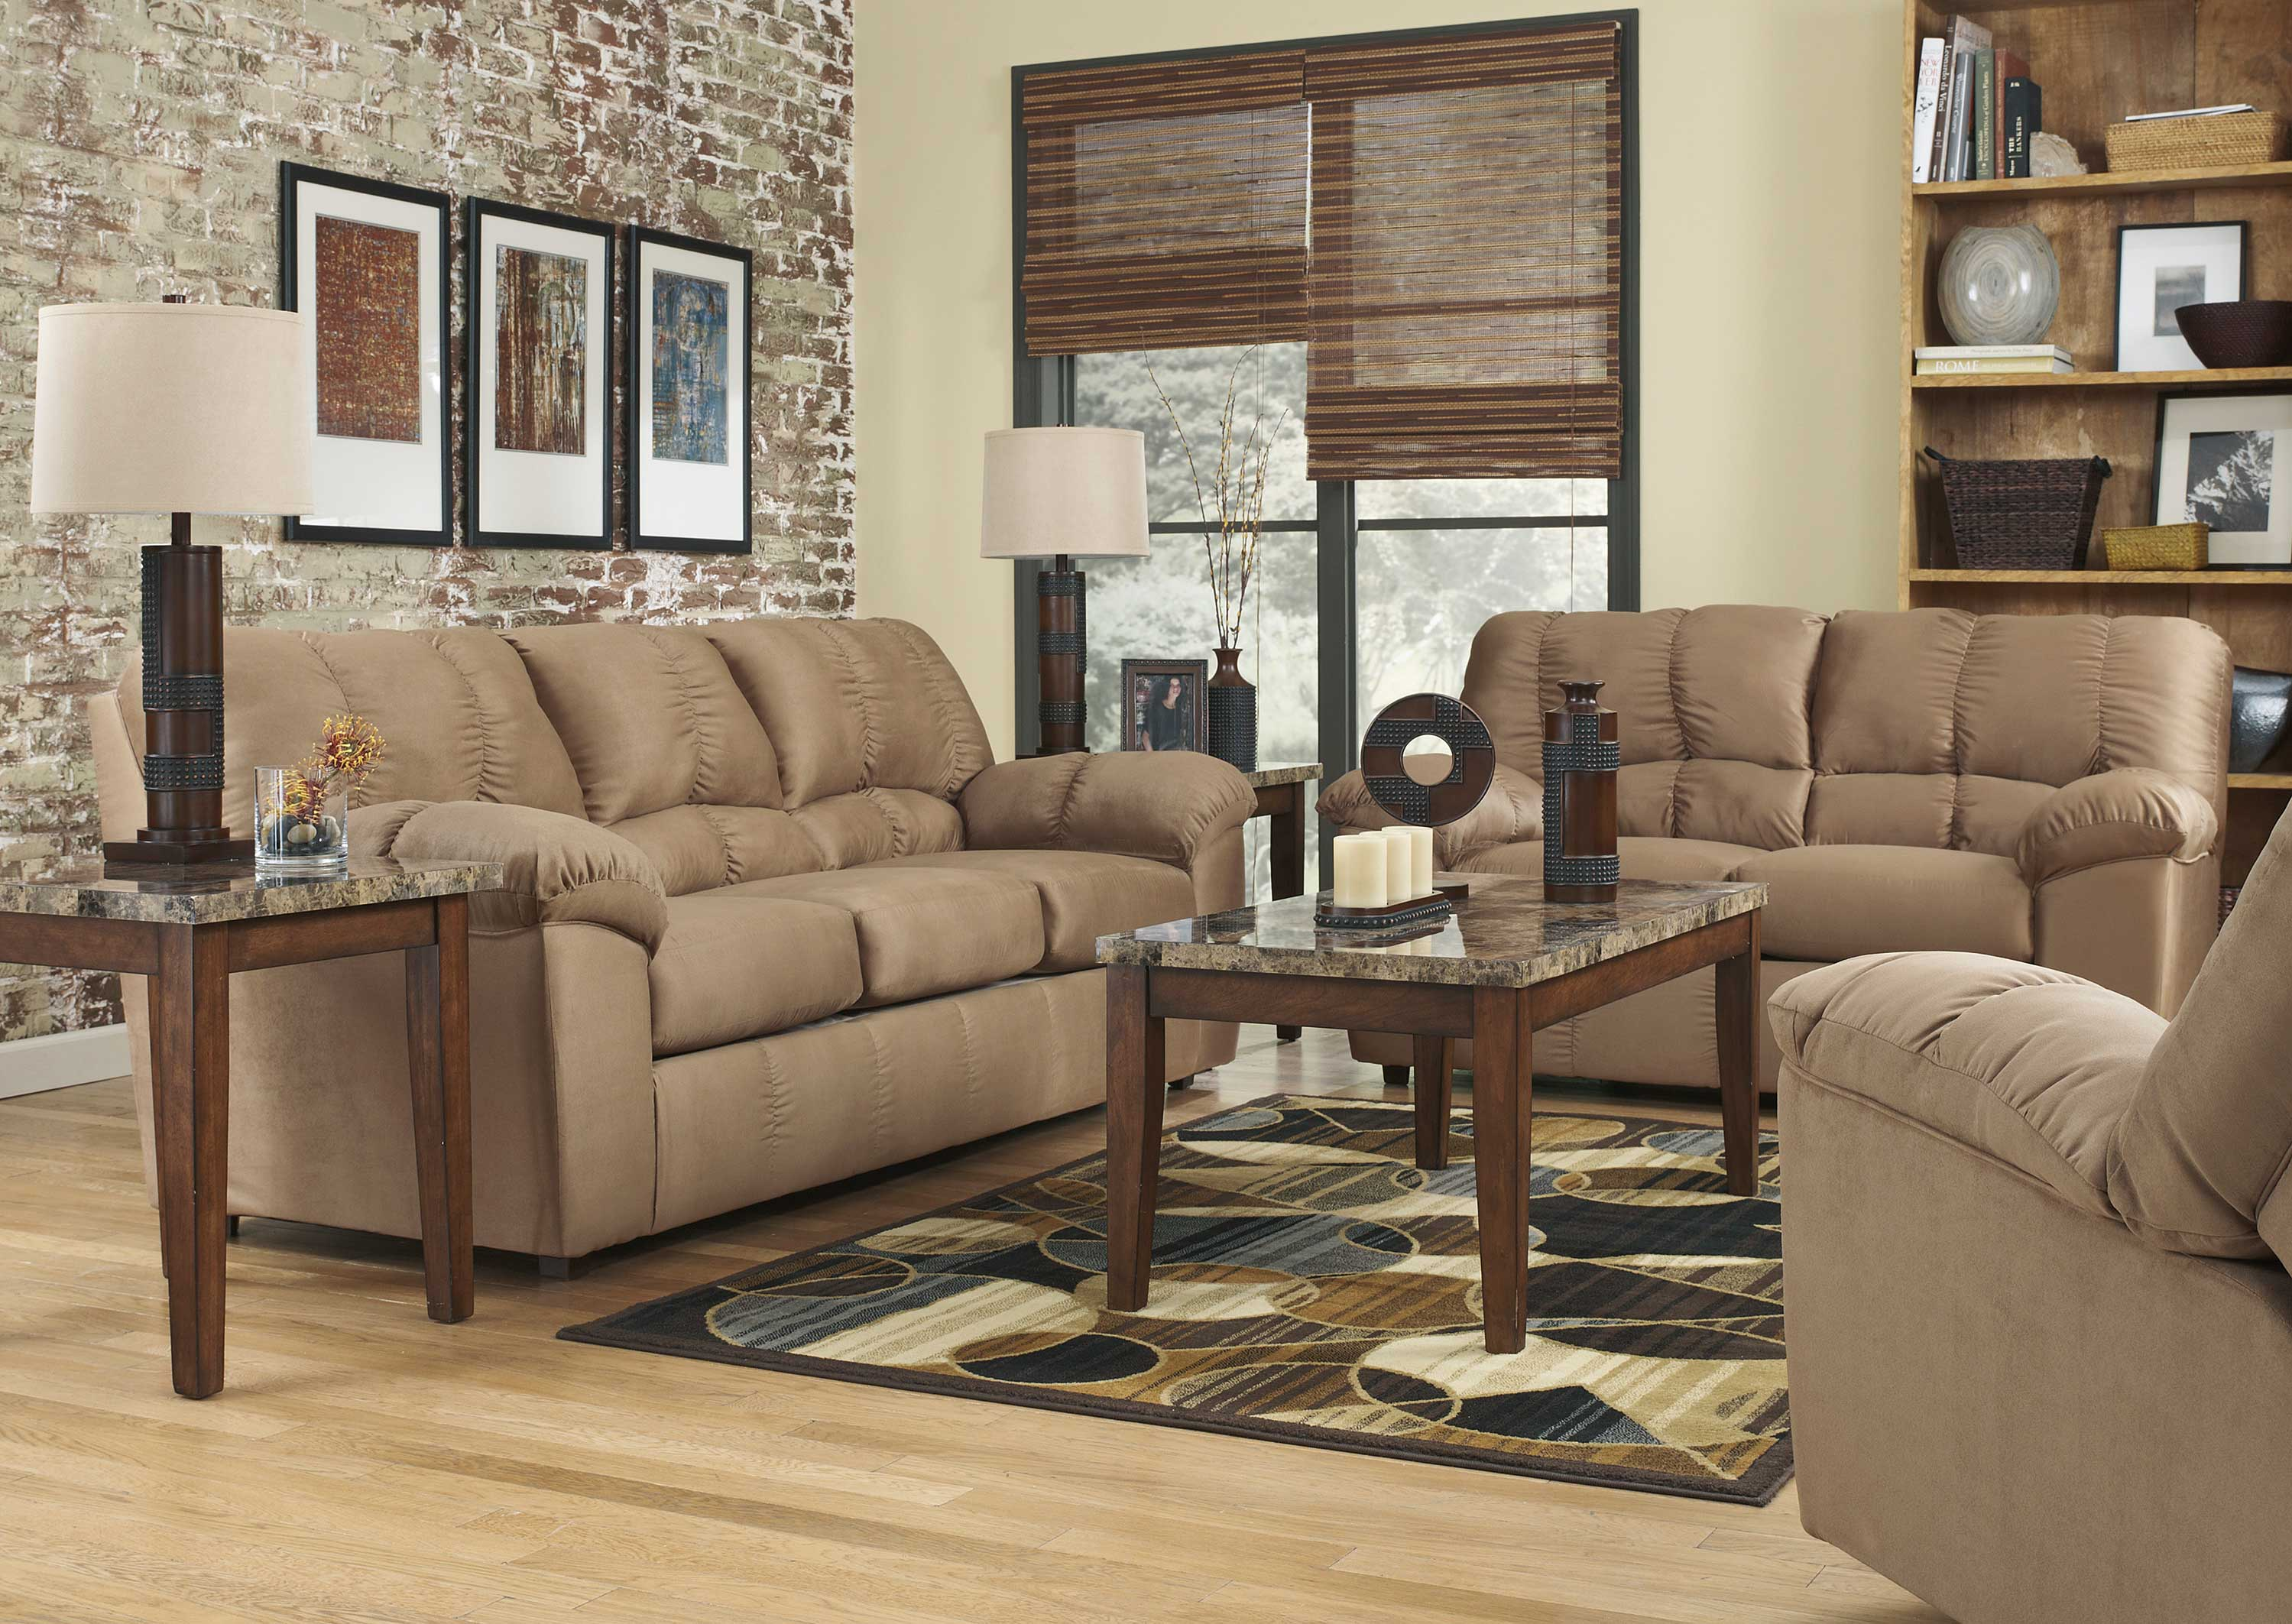 Ashley furniture sale baton rouge top furniture of 2016 Home furniture of baton rouge